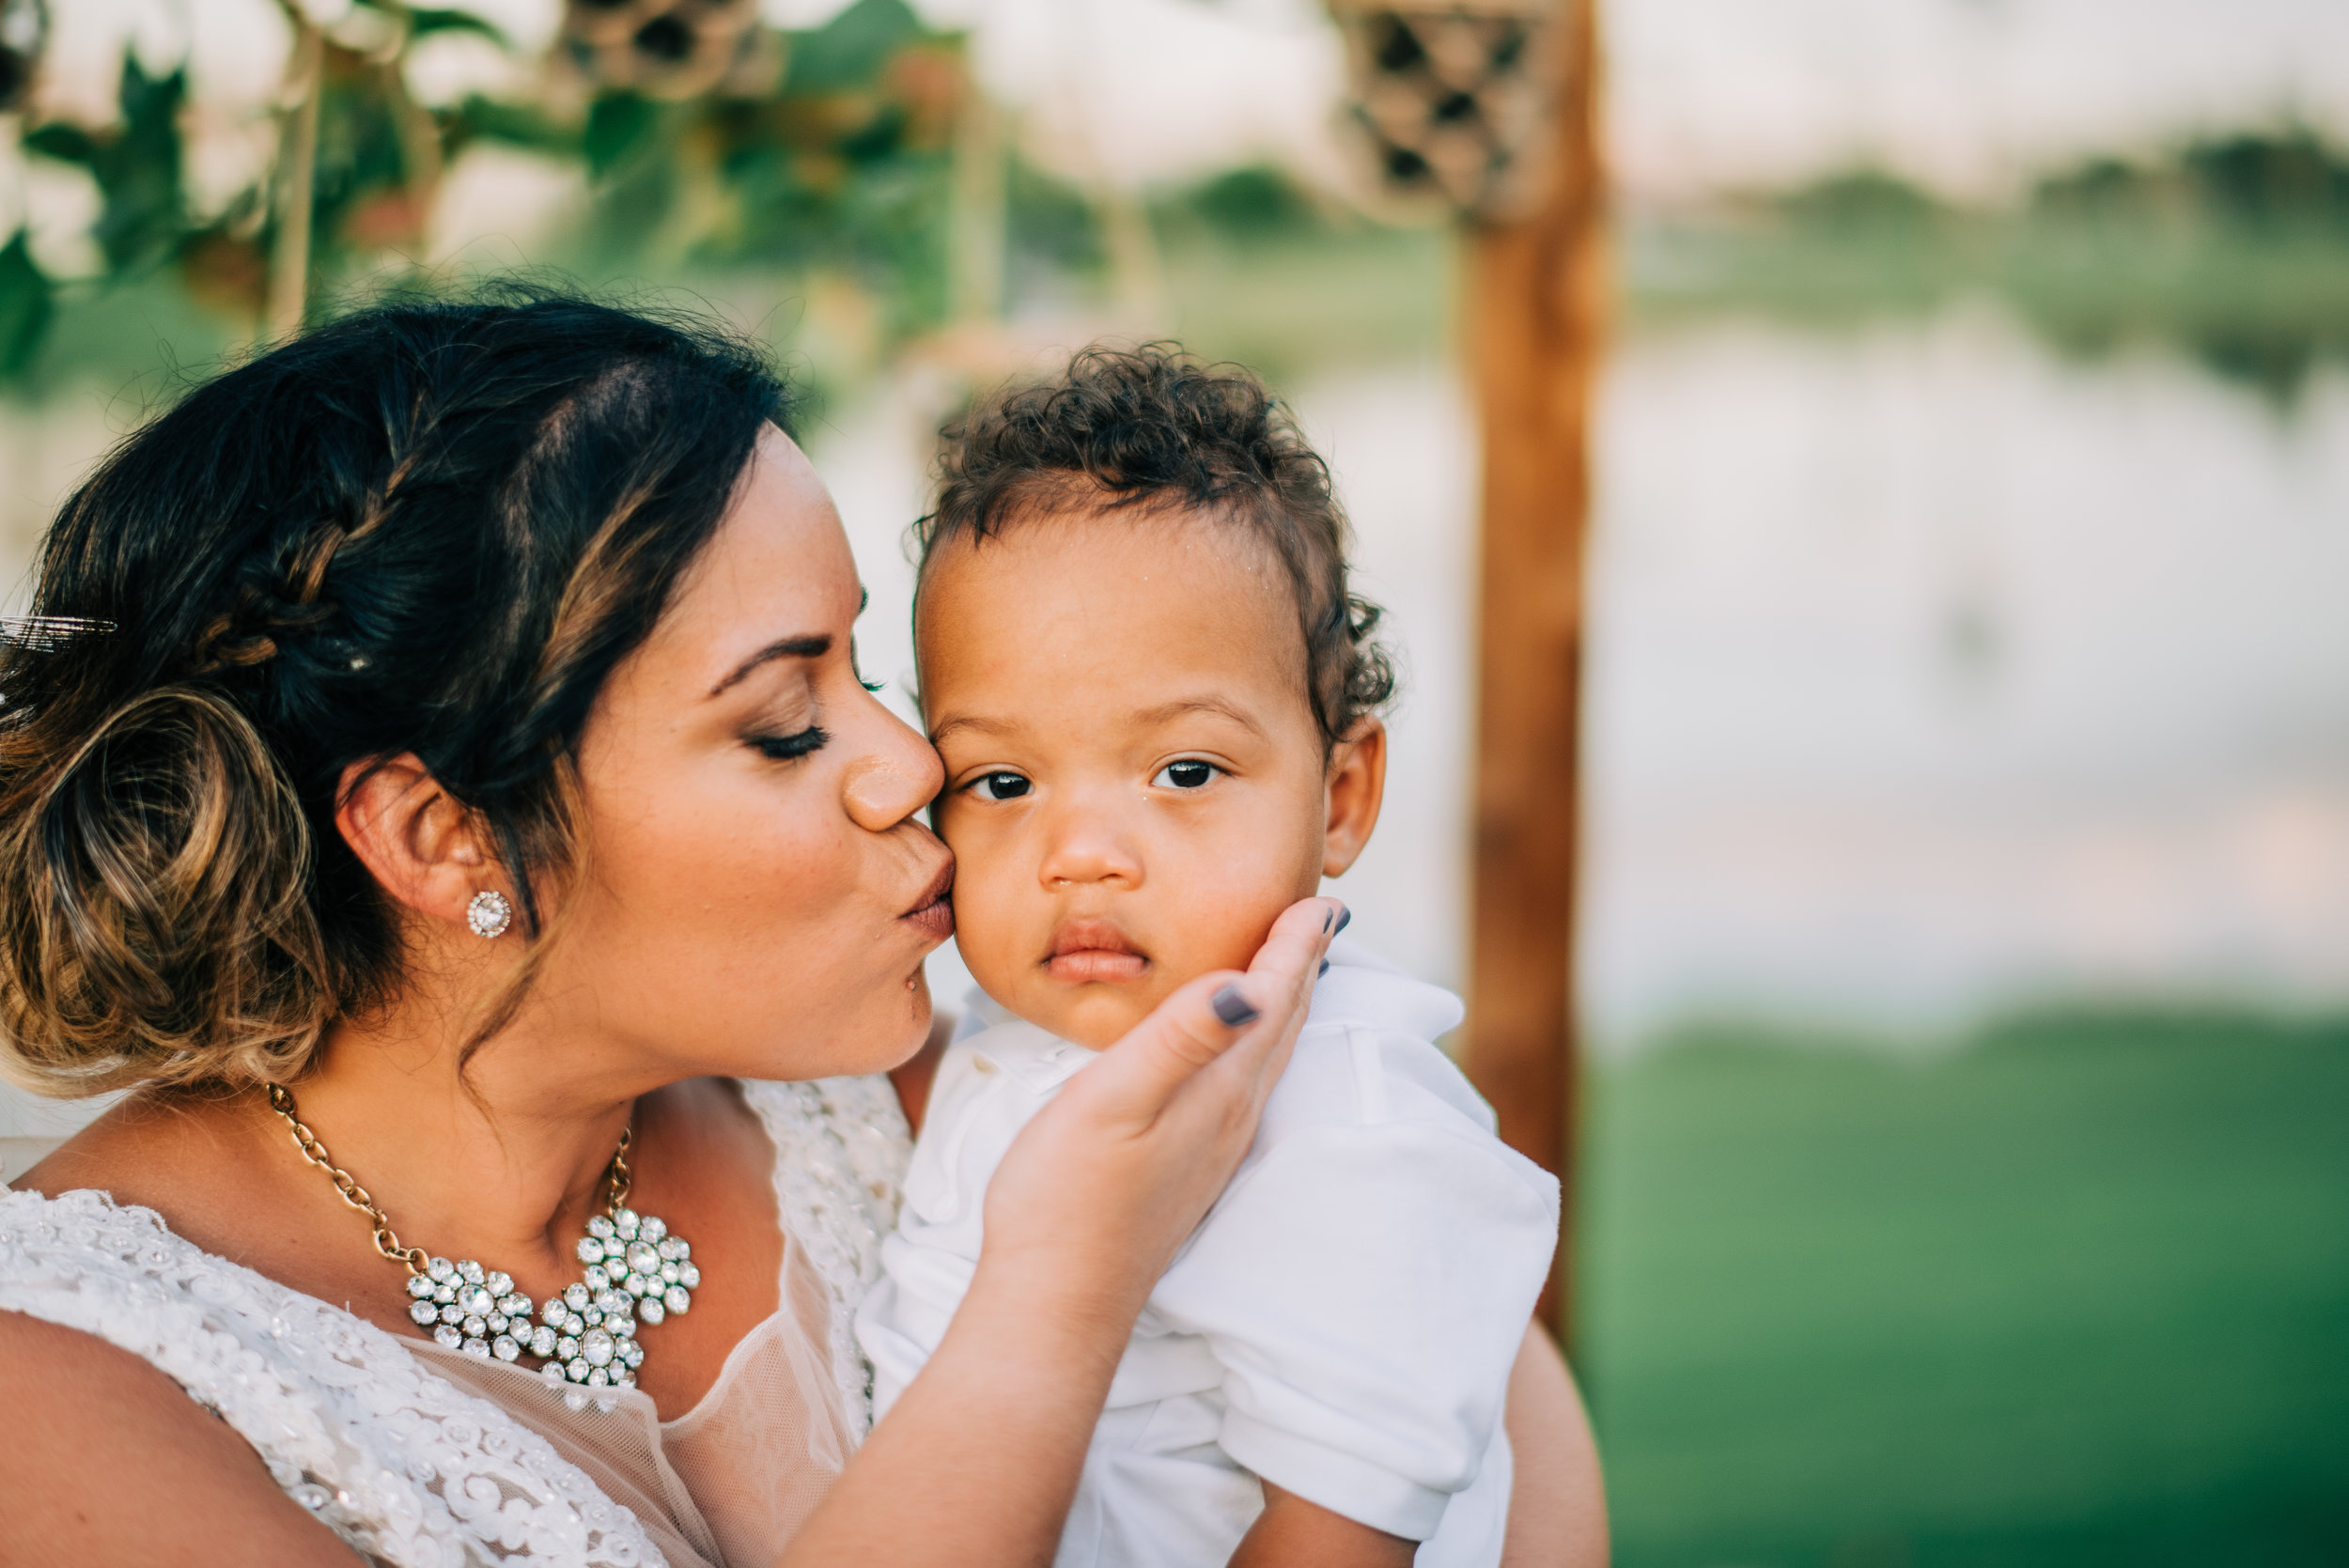 12 bride kiss son bride mom wedding couple with kids baby in wedding Life Design Events photos by Josh Snyder Photography.jpg